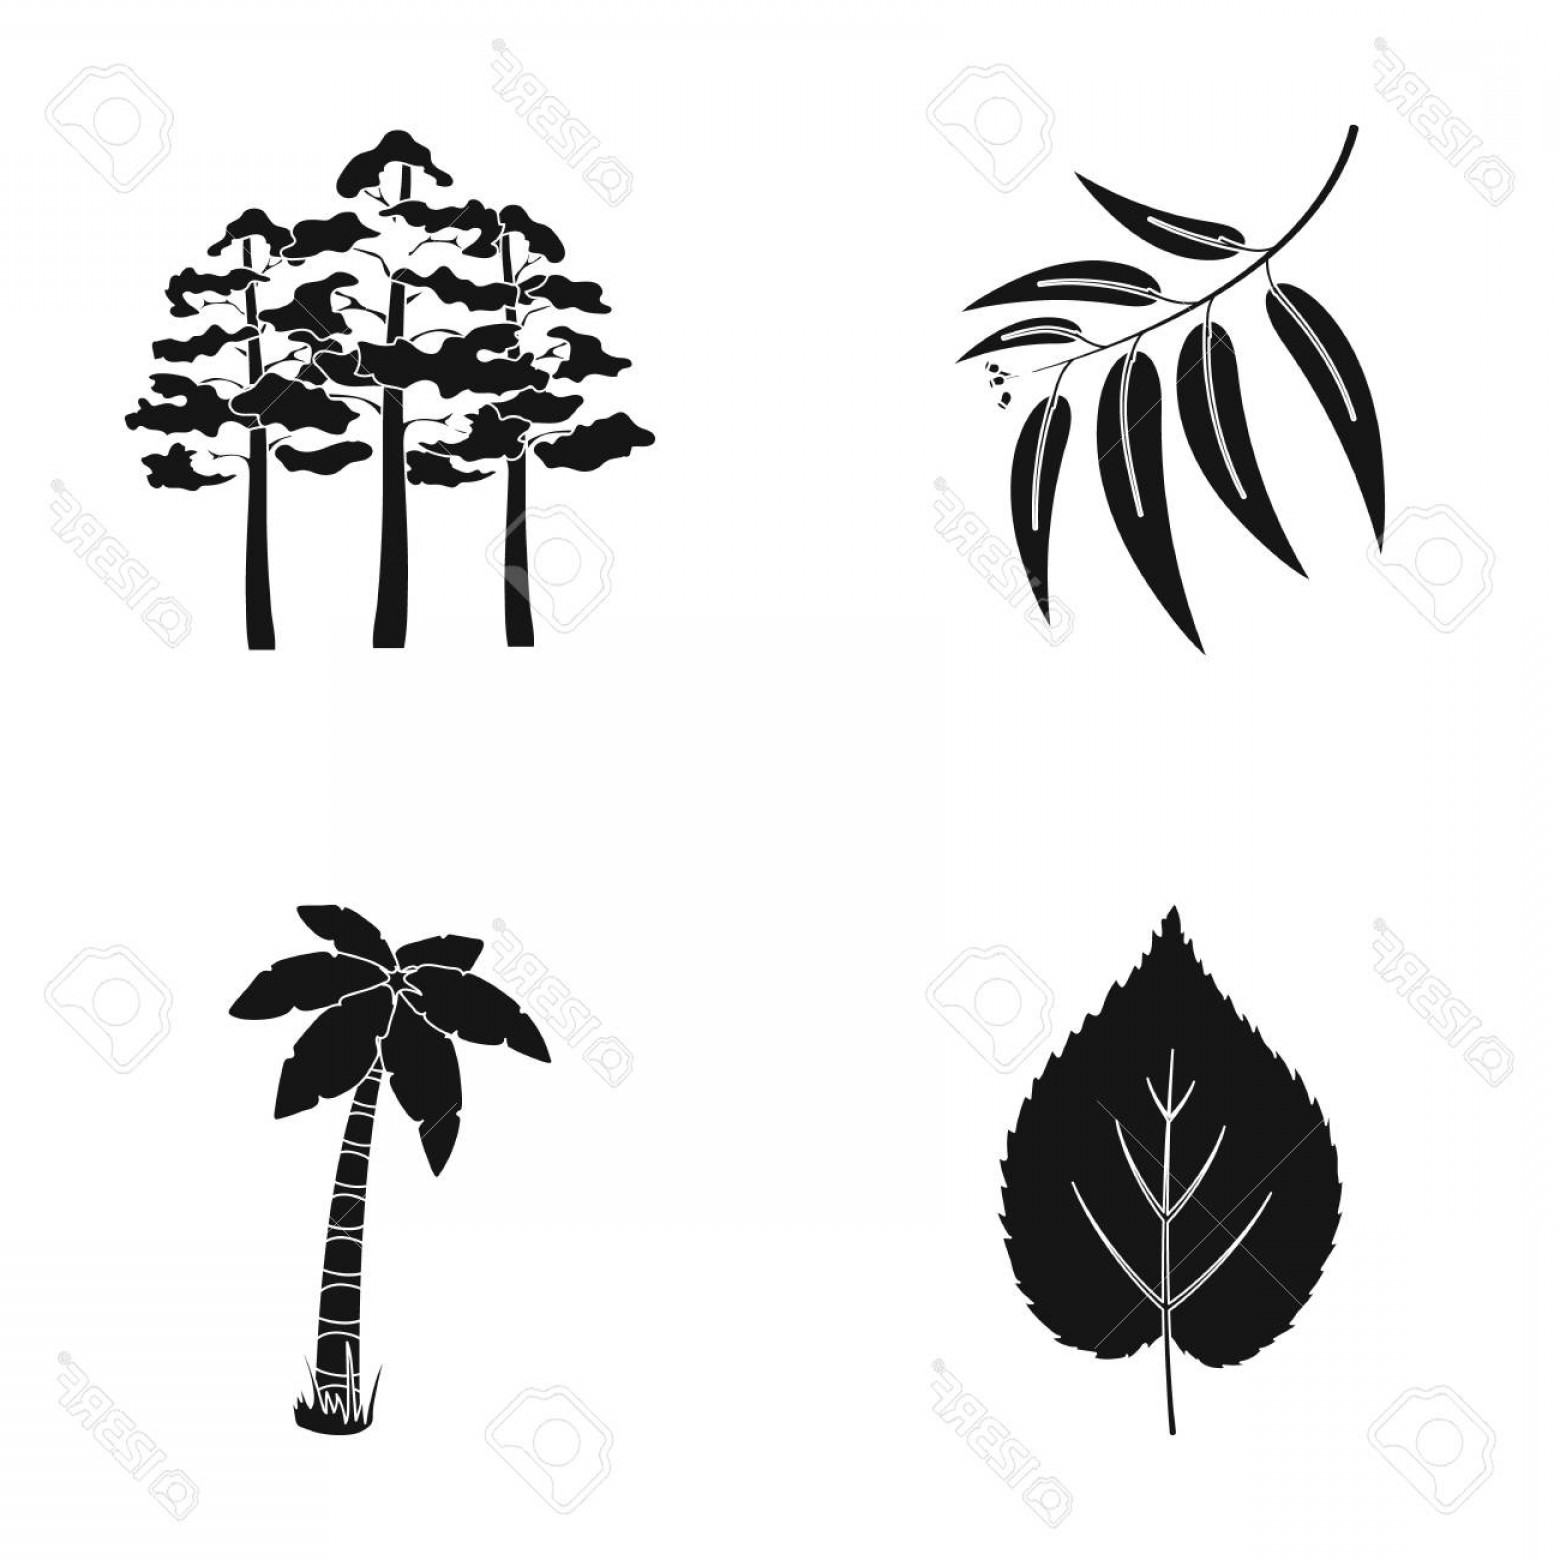 Pine Leaf Vector: Photostock Vector Branch Zucalyptus Pine Leaf Palm